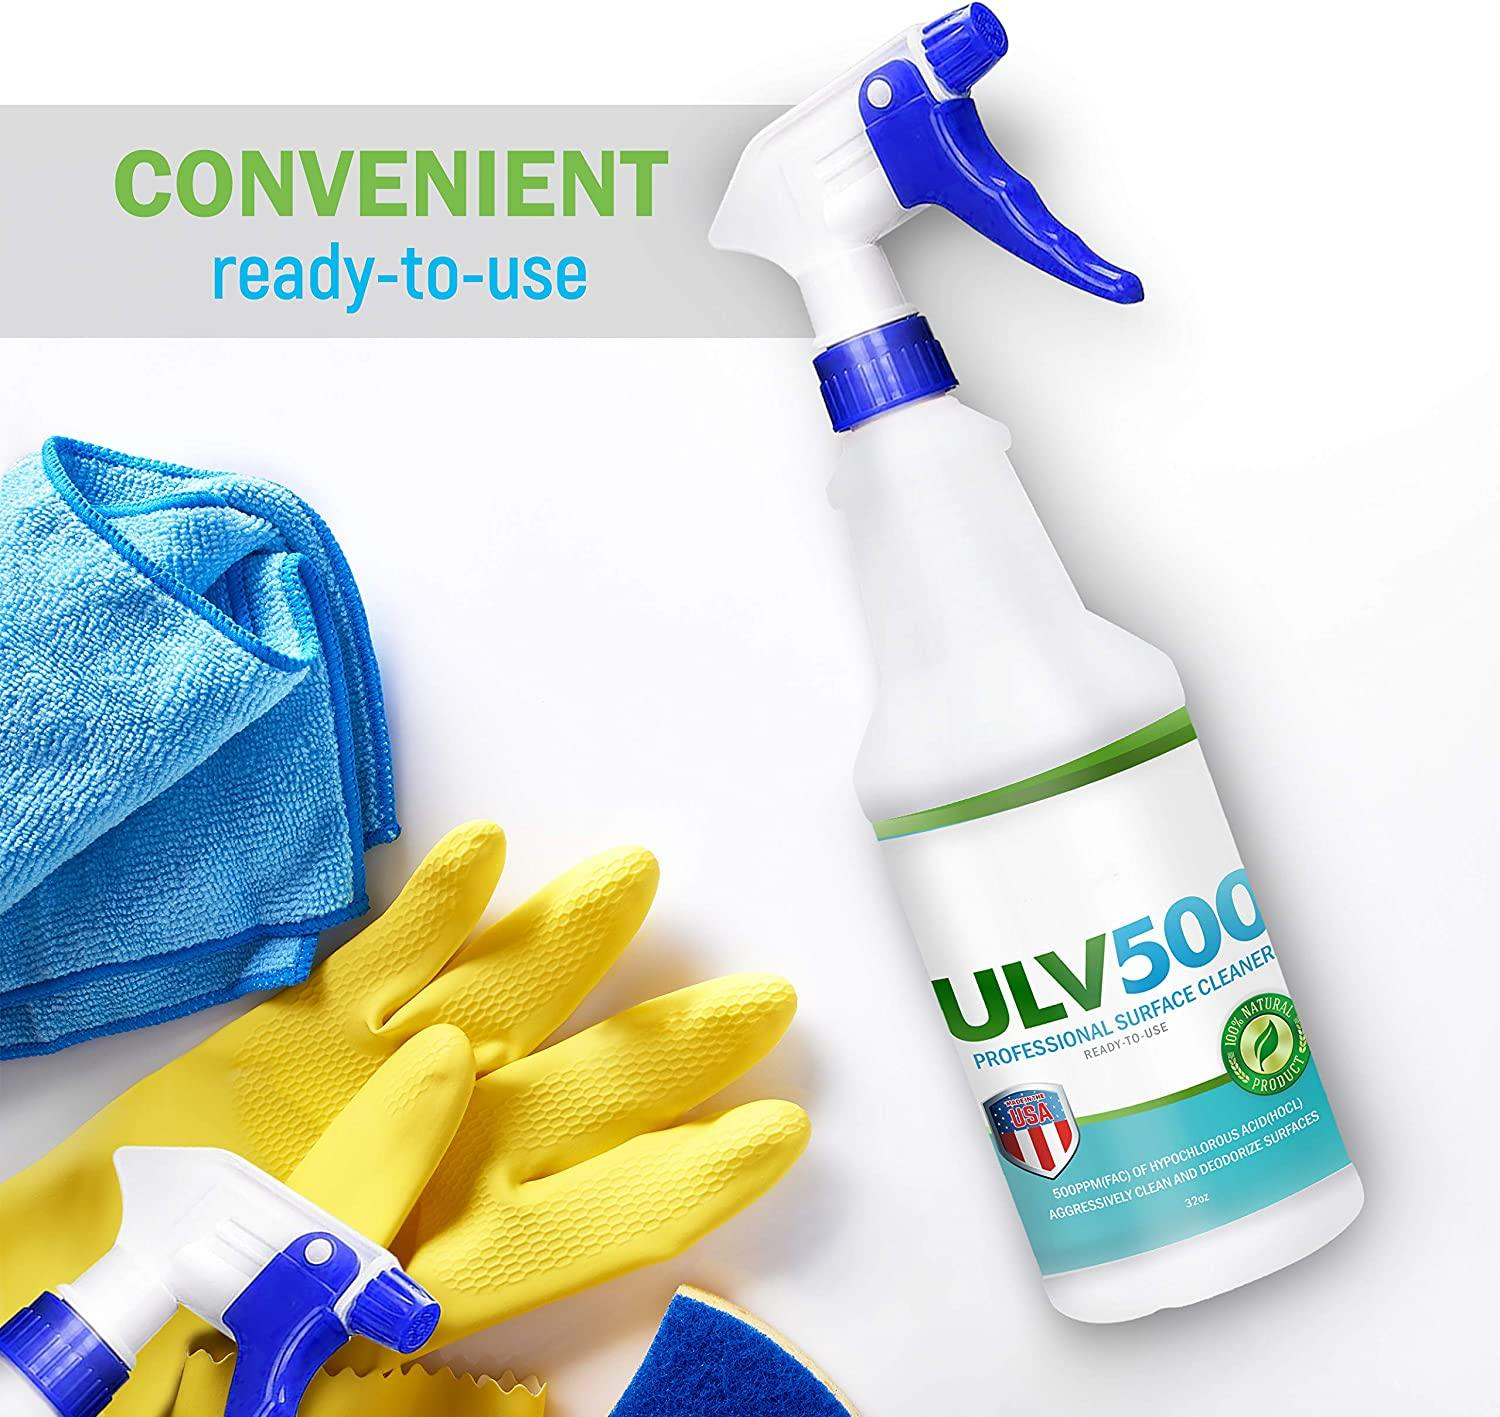 ULV500 Professional Surface Cleaner (HOCl) 32oz